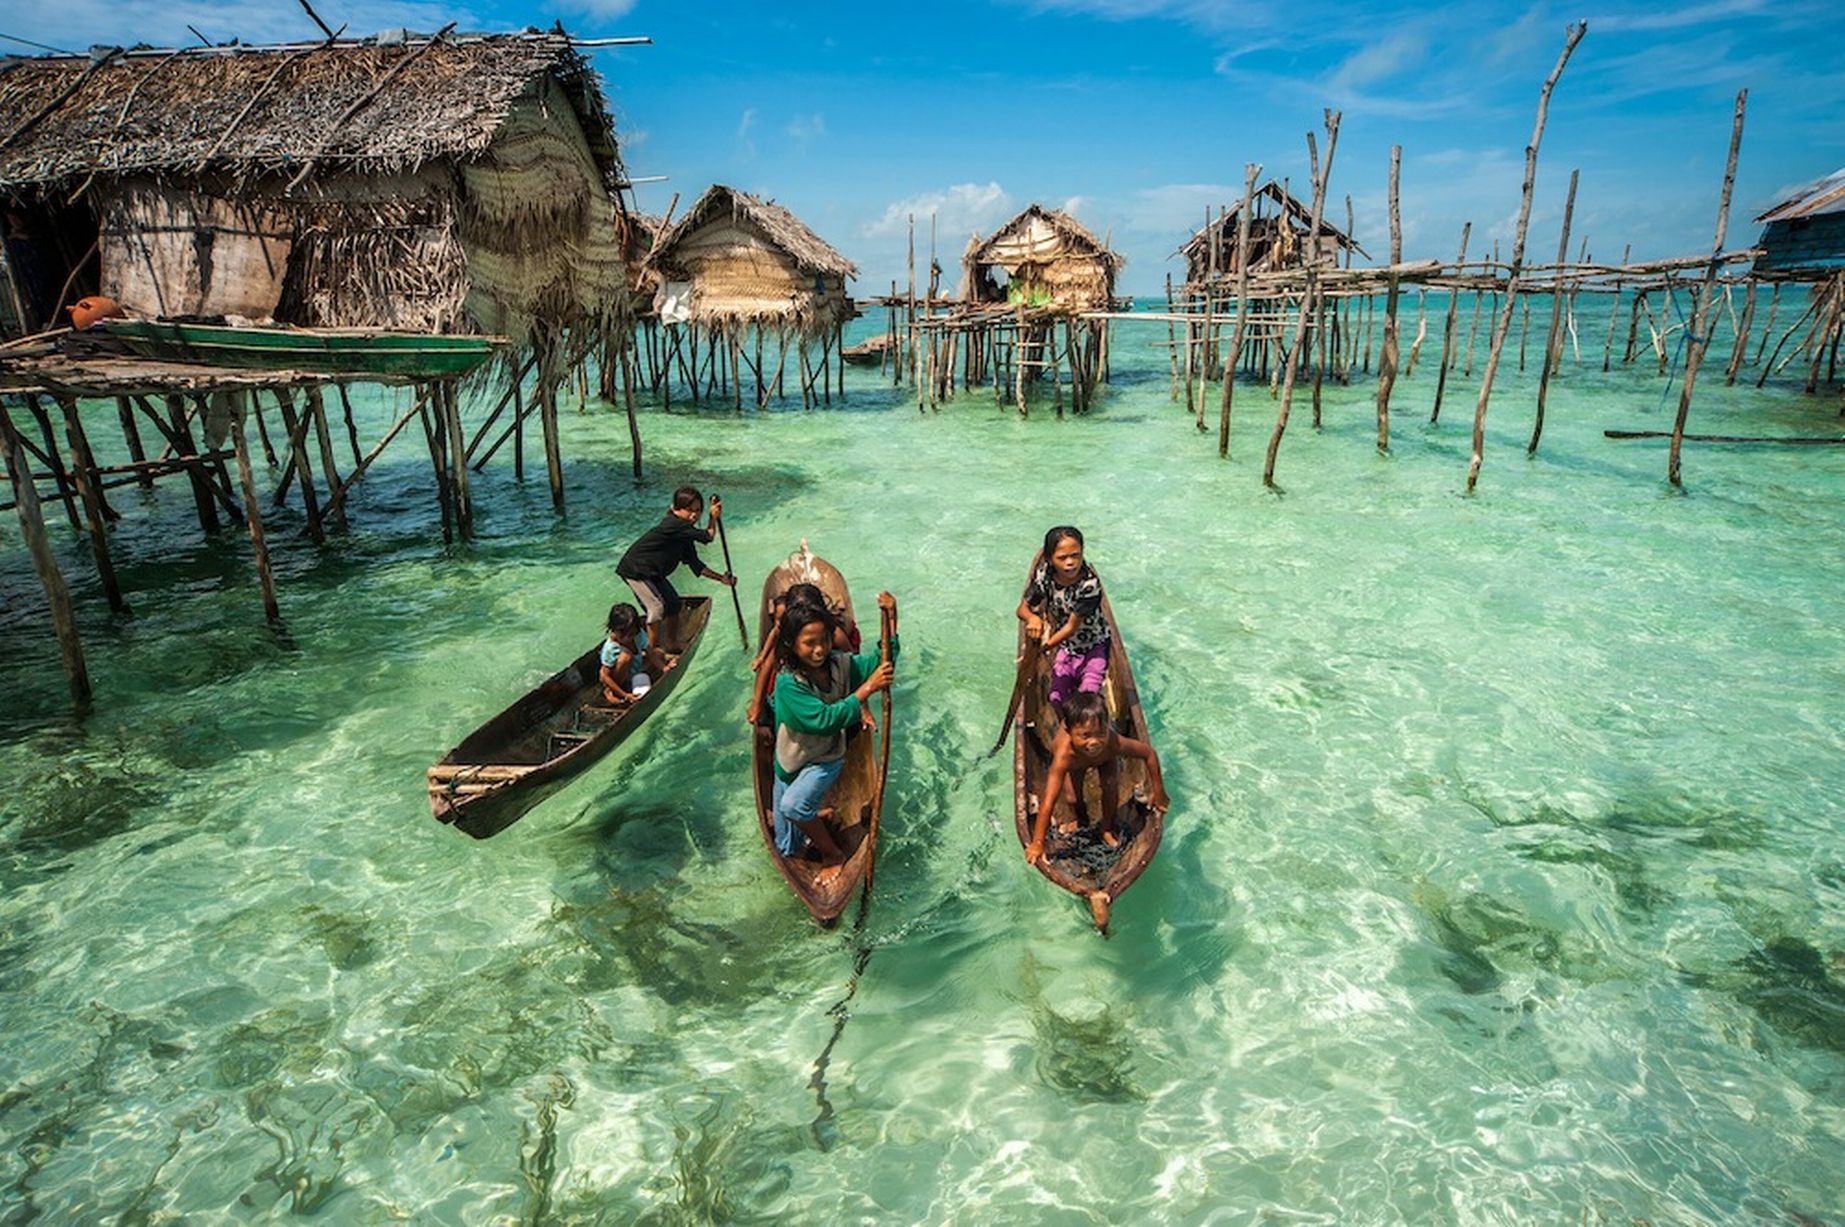 PAY-The-Bajau-people